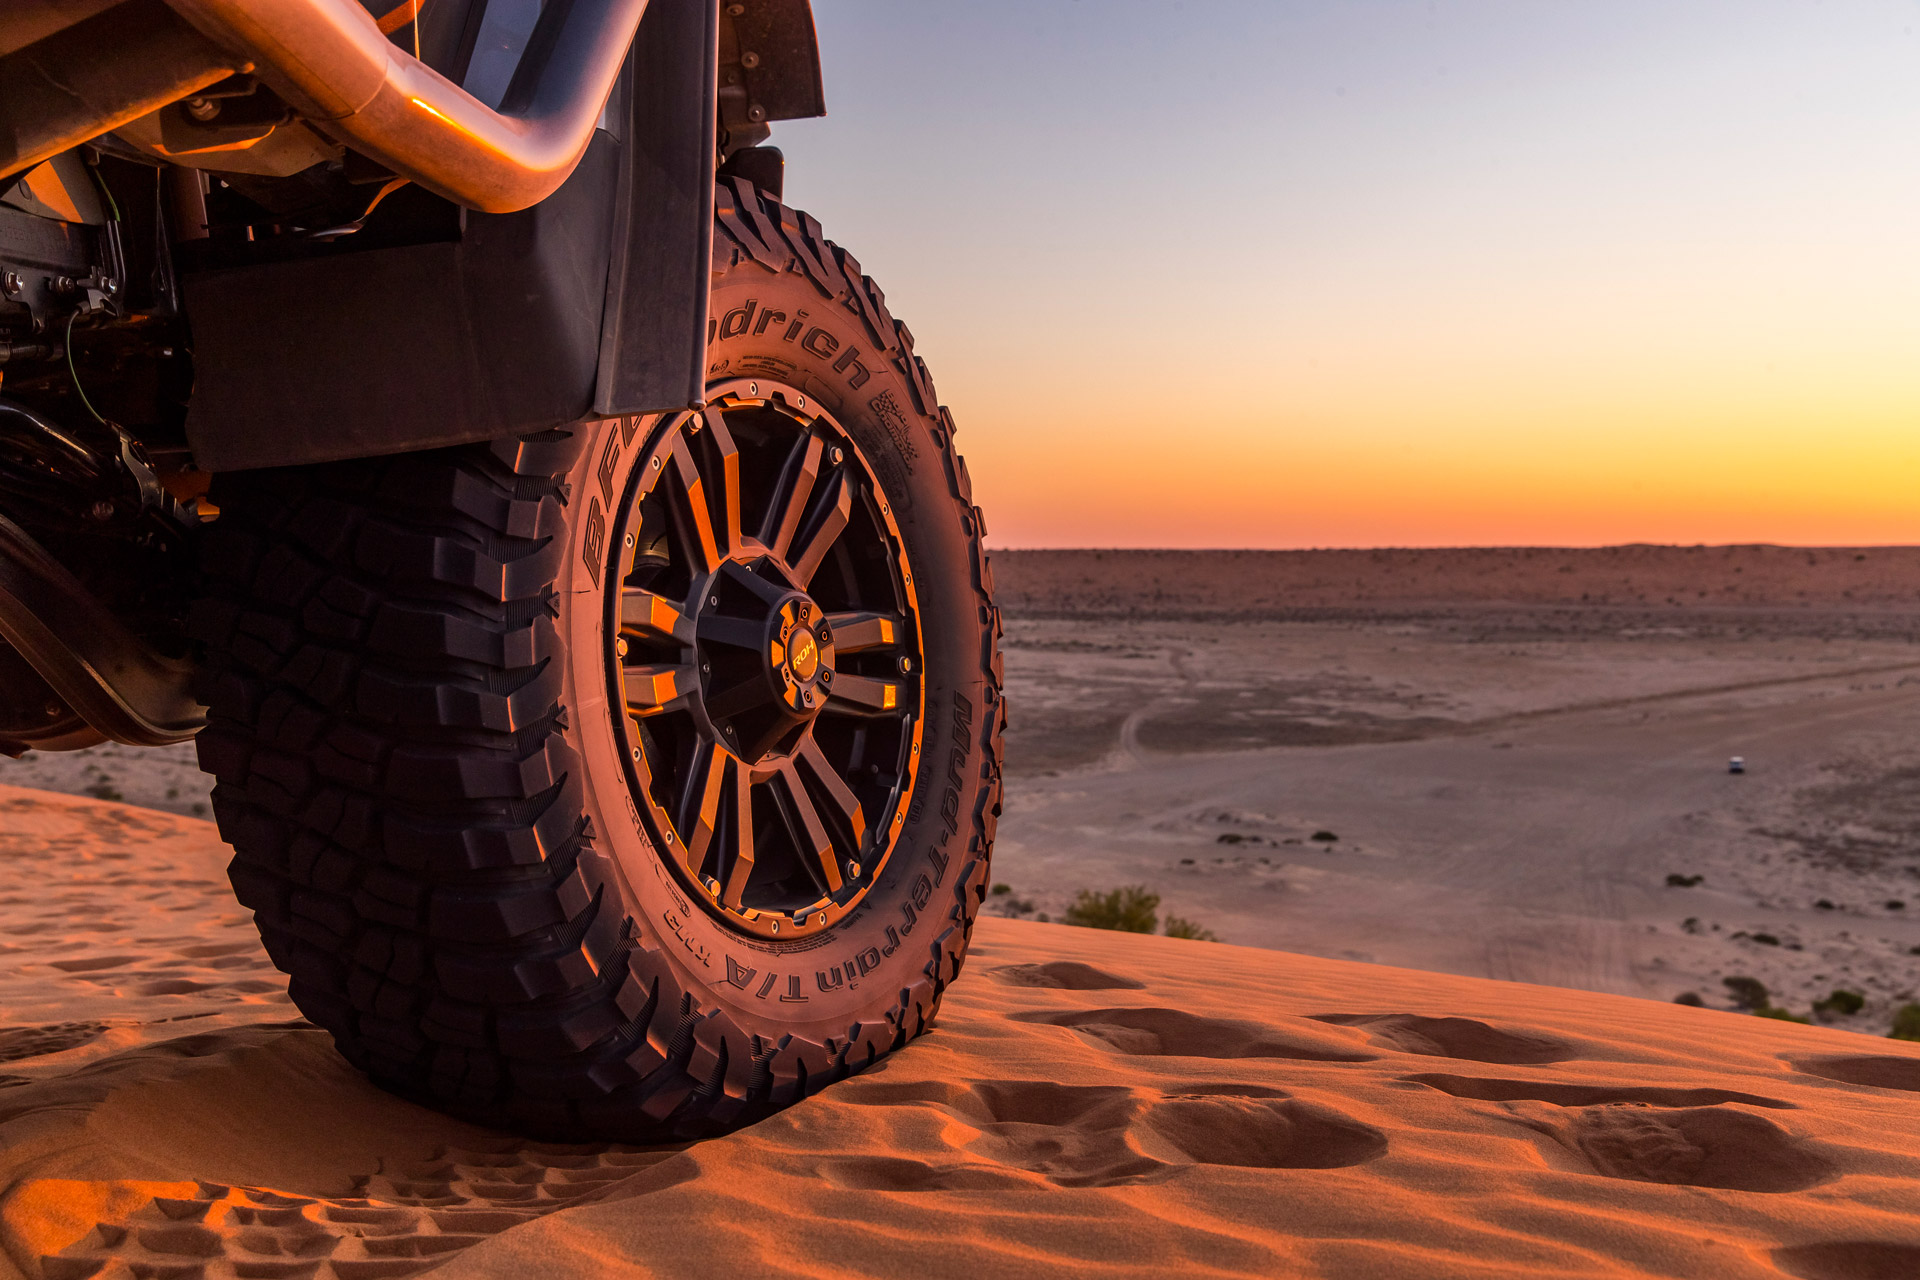 Vapour 4x4 wheel by ROH at sunset on sand in the desert